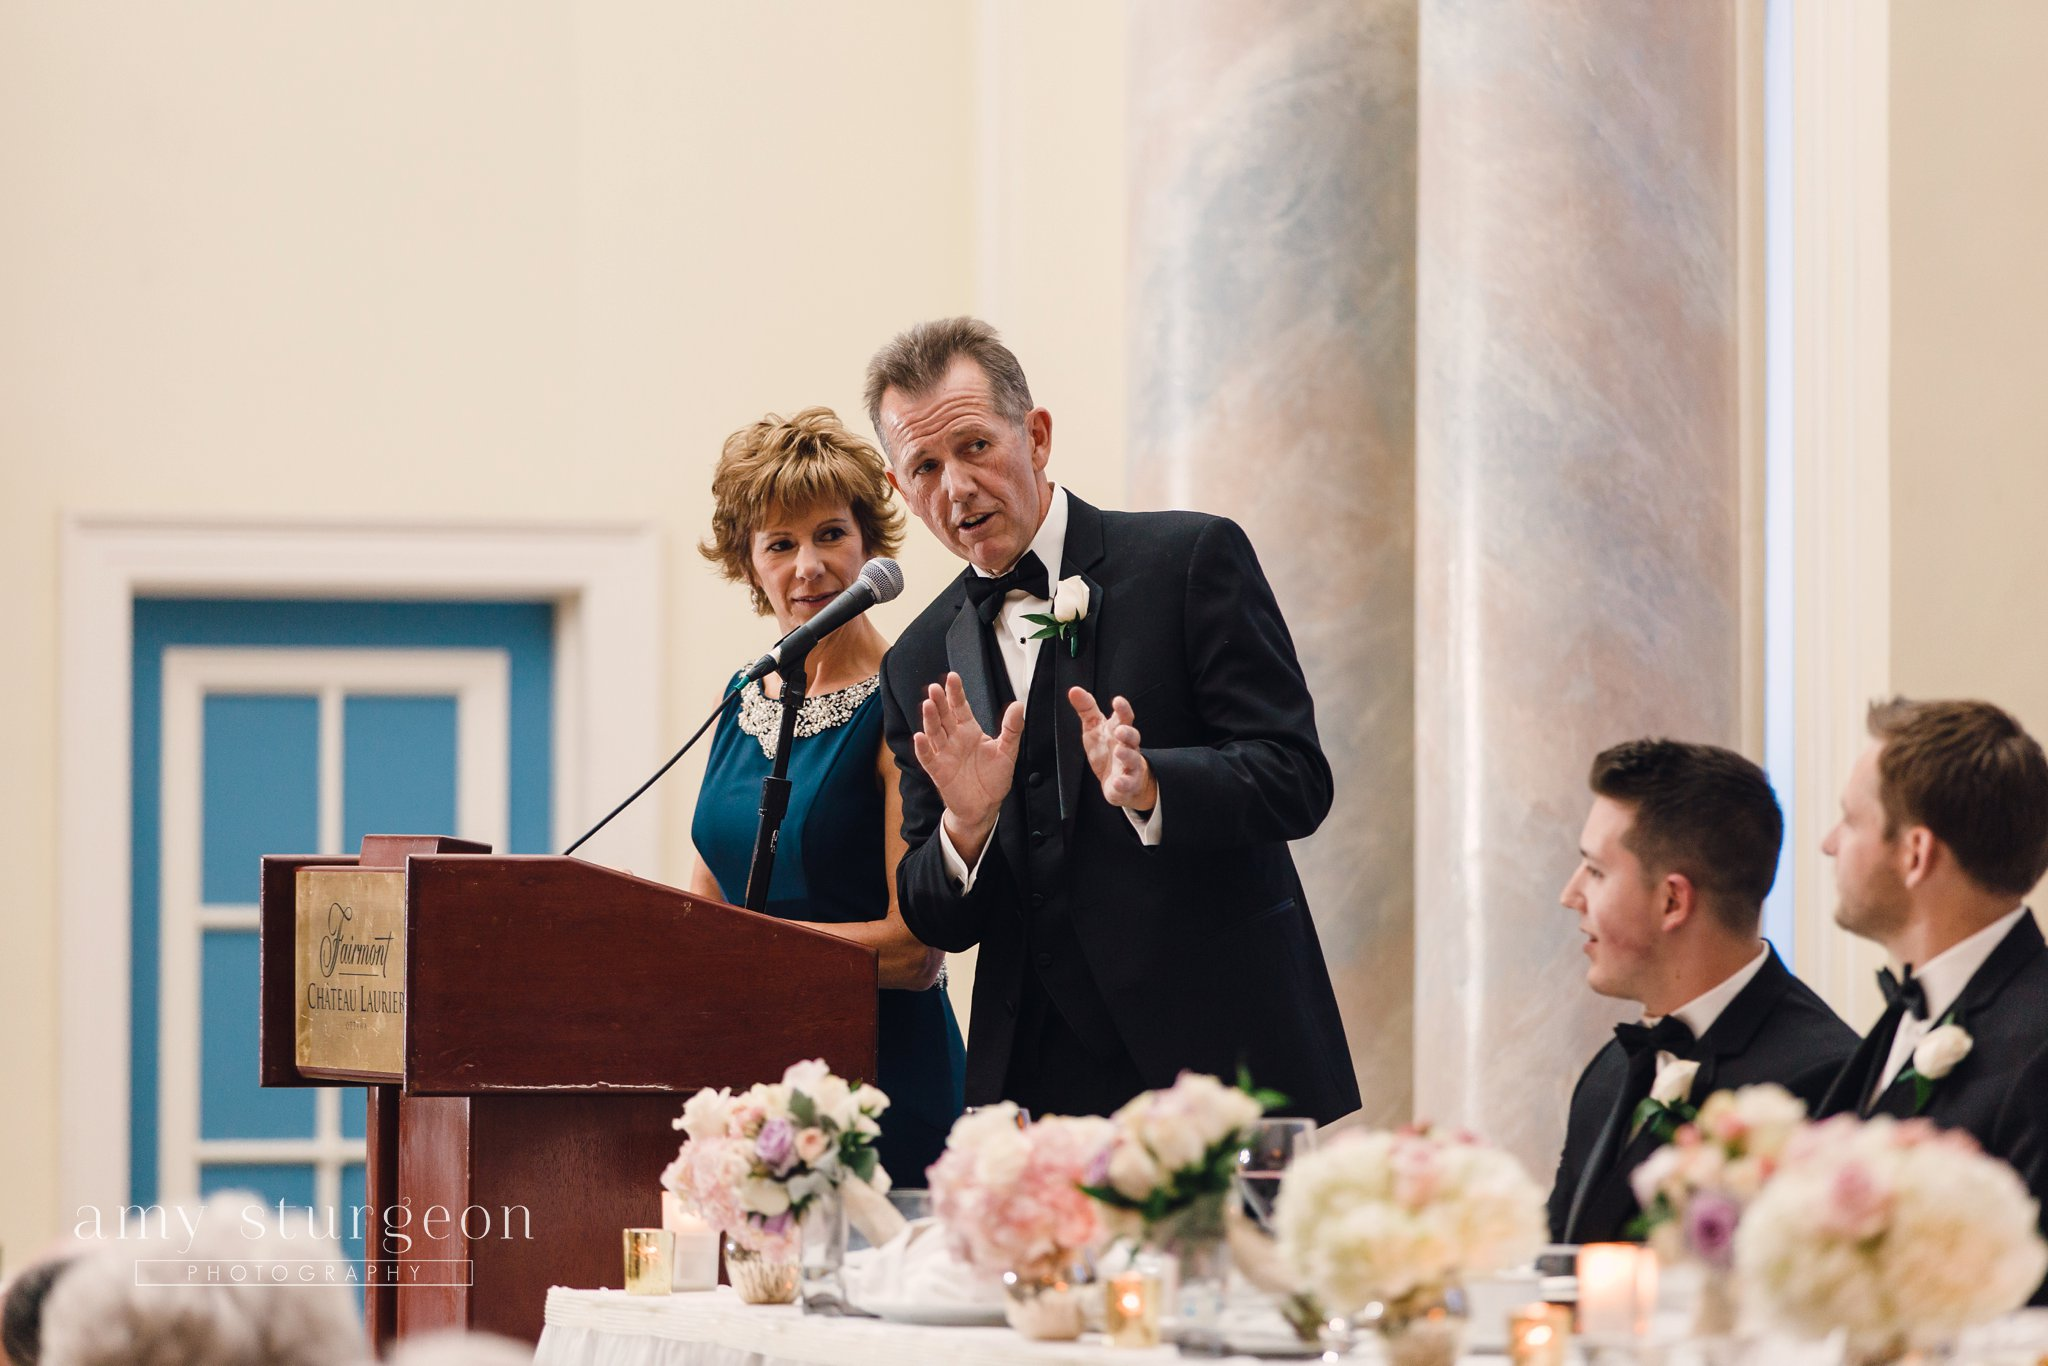 Chateau Laurier Wedding_Ottawa wedding photographer_069